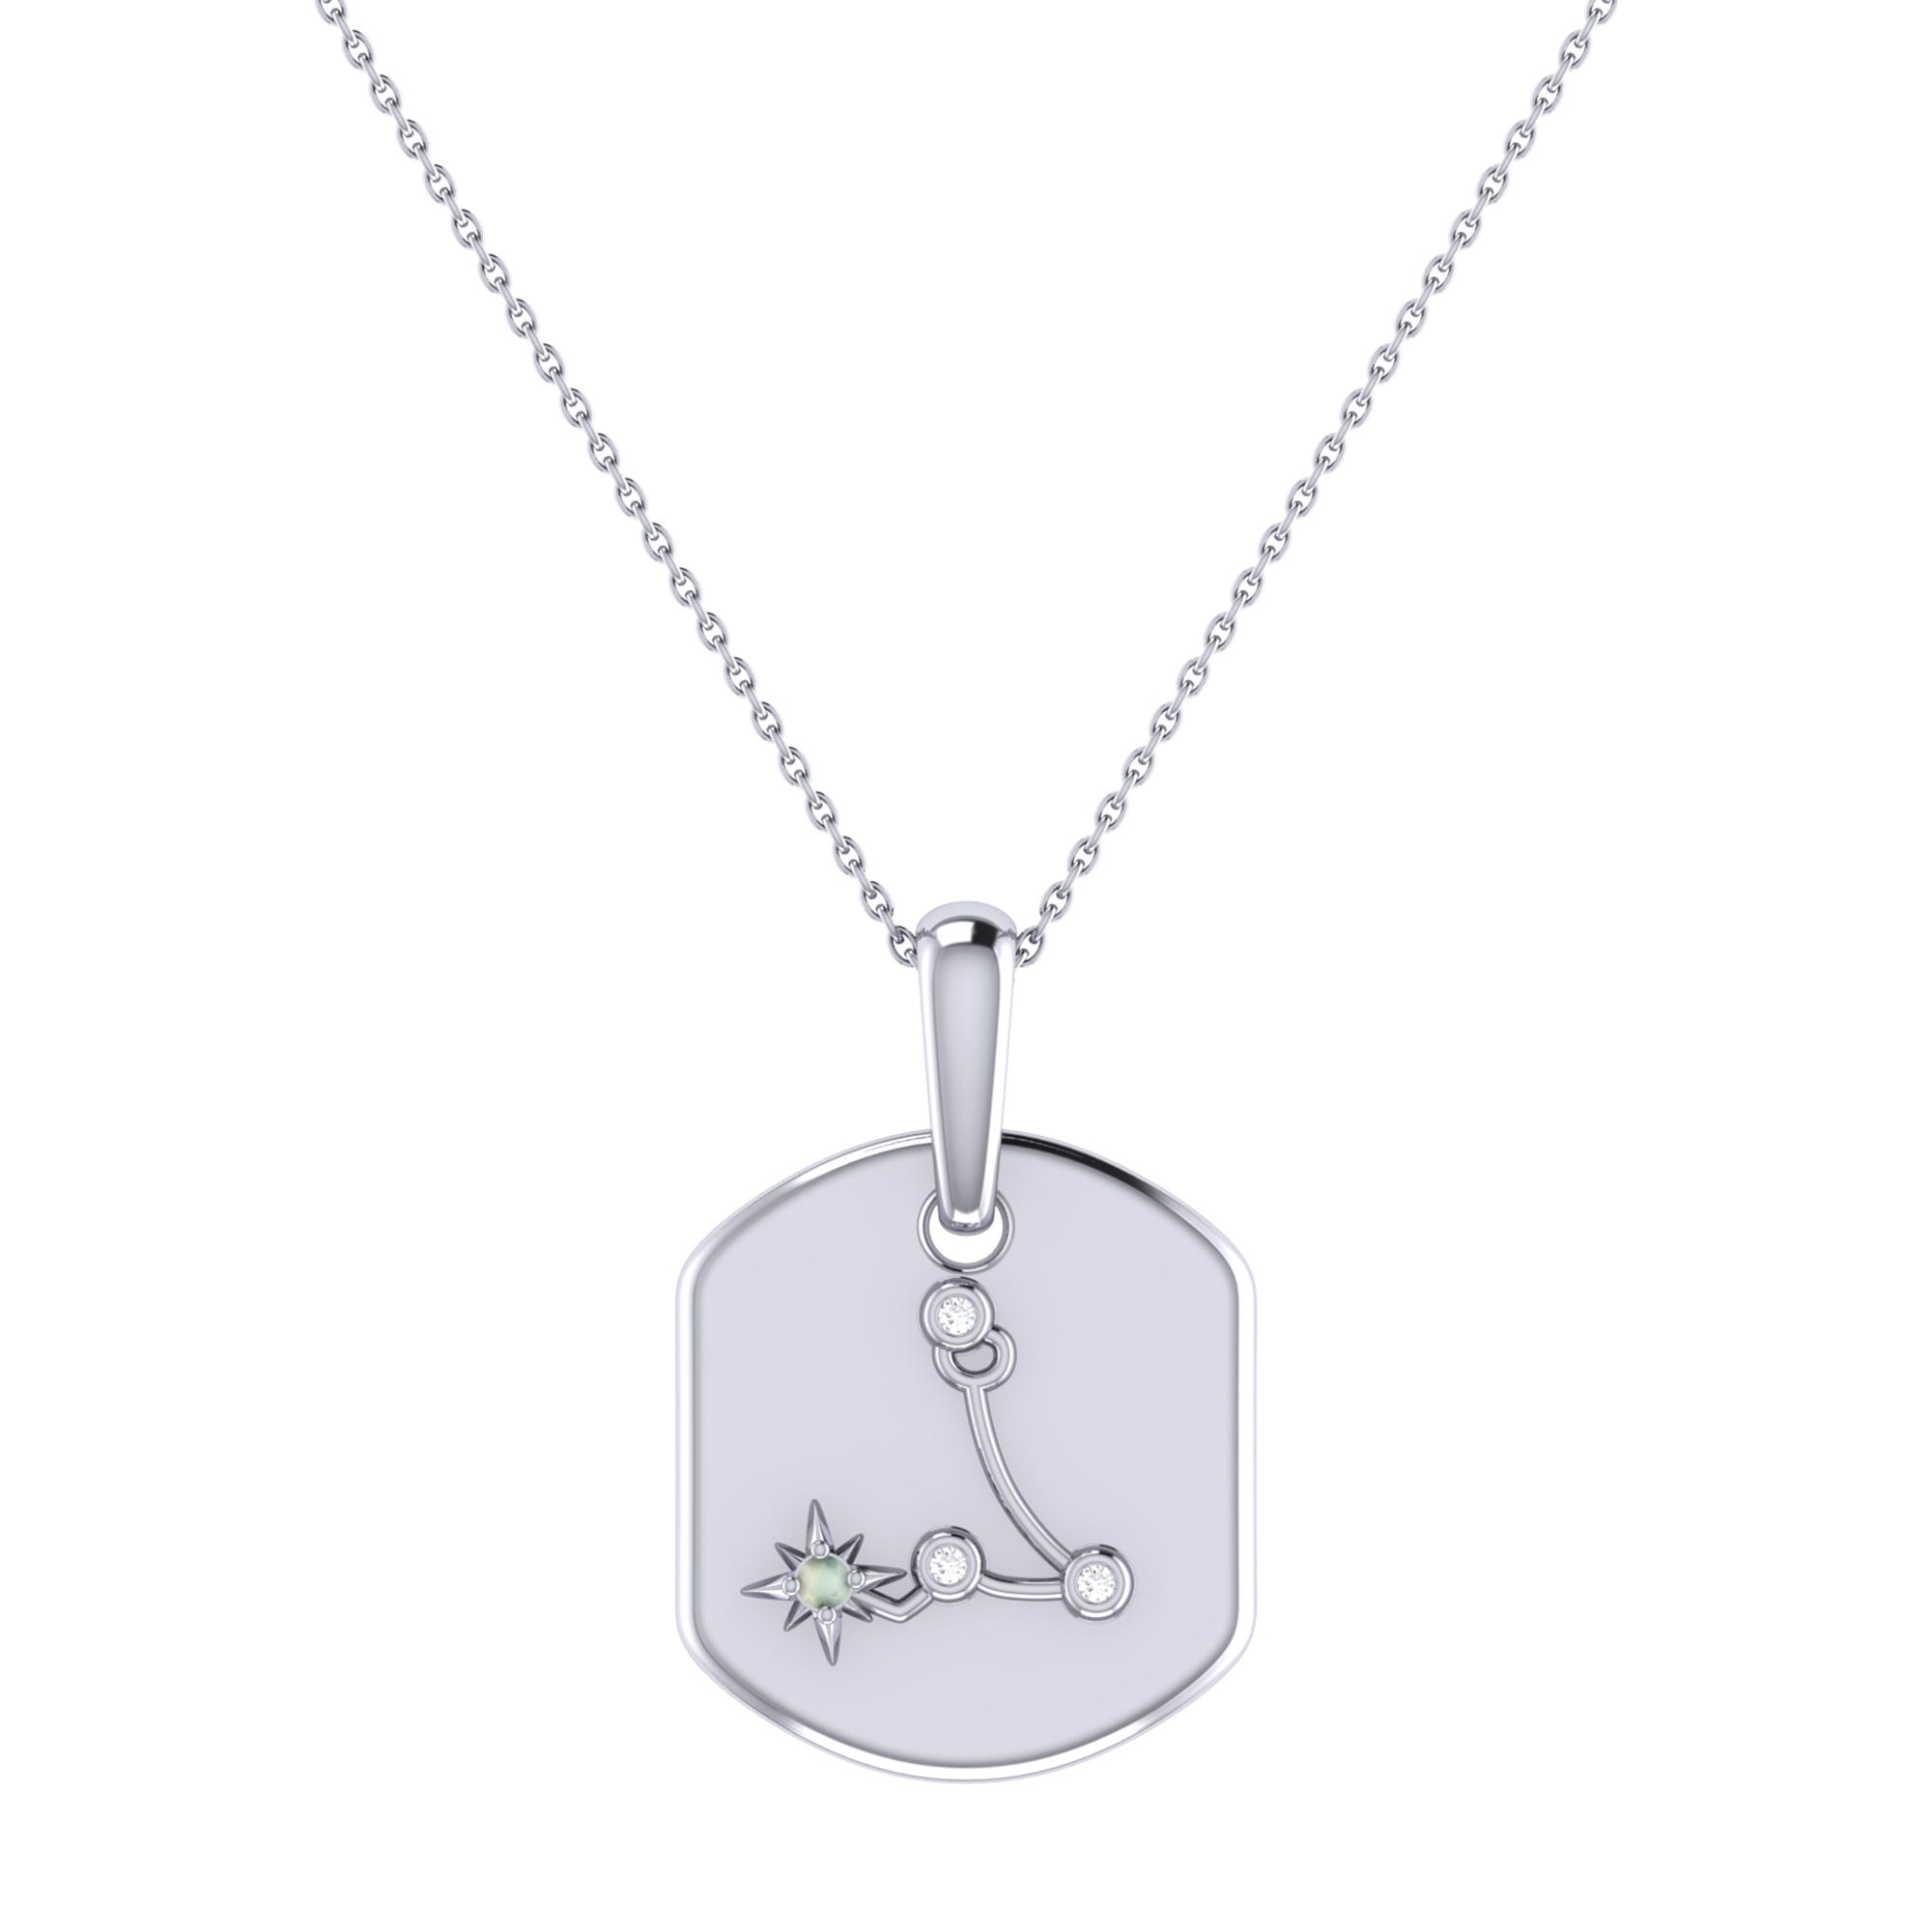 Diamond and Aquamarine Pisces Constellation Tag Necklace in Sterling Silver